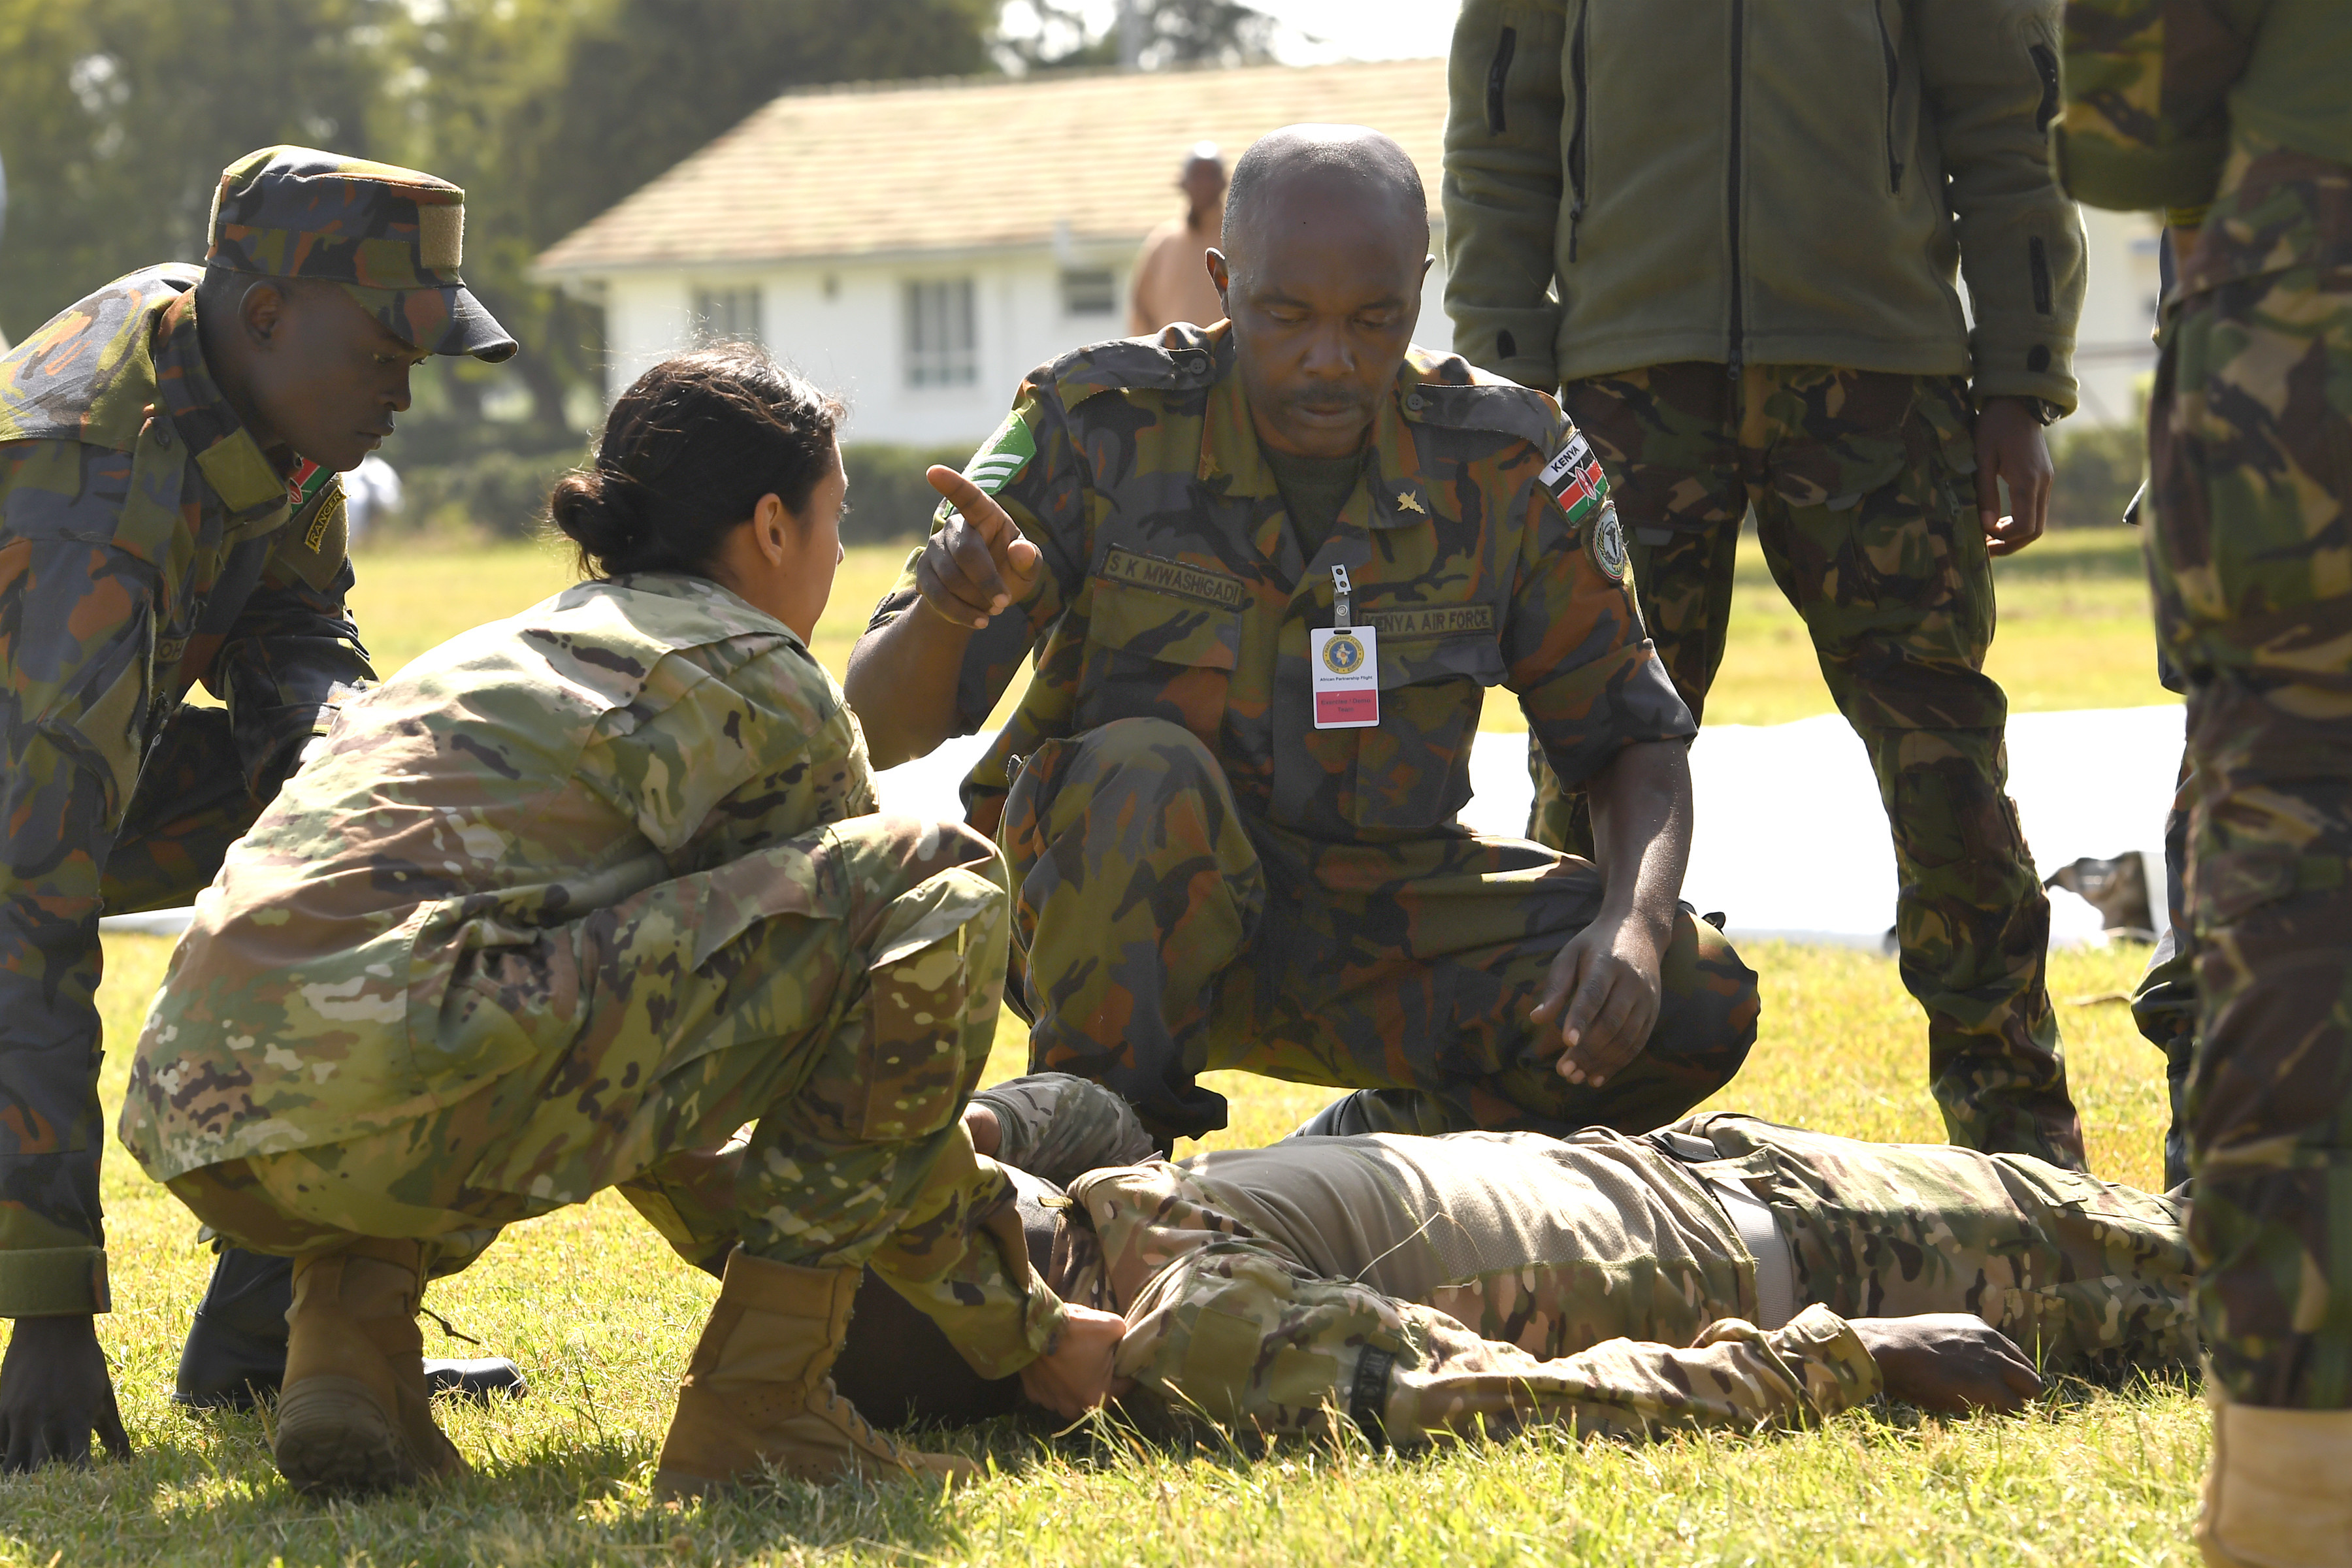 U.S. Air Force Senior Airman Daniela Rizzari, 104th Fighter Wing, Massachusetts Air National Guard medical technician, reviews checking airways with Kenya air force nurse Senior Sgt. Sospeter Mwashigadi, during a tactical combat casualty care demonstration at the African Partnership Flight Kenya 2019 event, Laikipia Air Base, Kenya, August 21, 2019. The TCCC demonstrated all three phases of care to include care under fire, tactical field care and tactical evacuation care. (U.S. Air Force photo by Master Sgt. Renae Pittman)